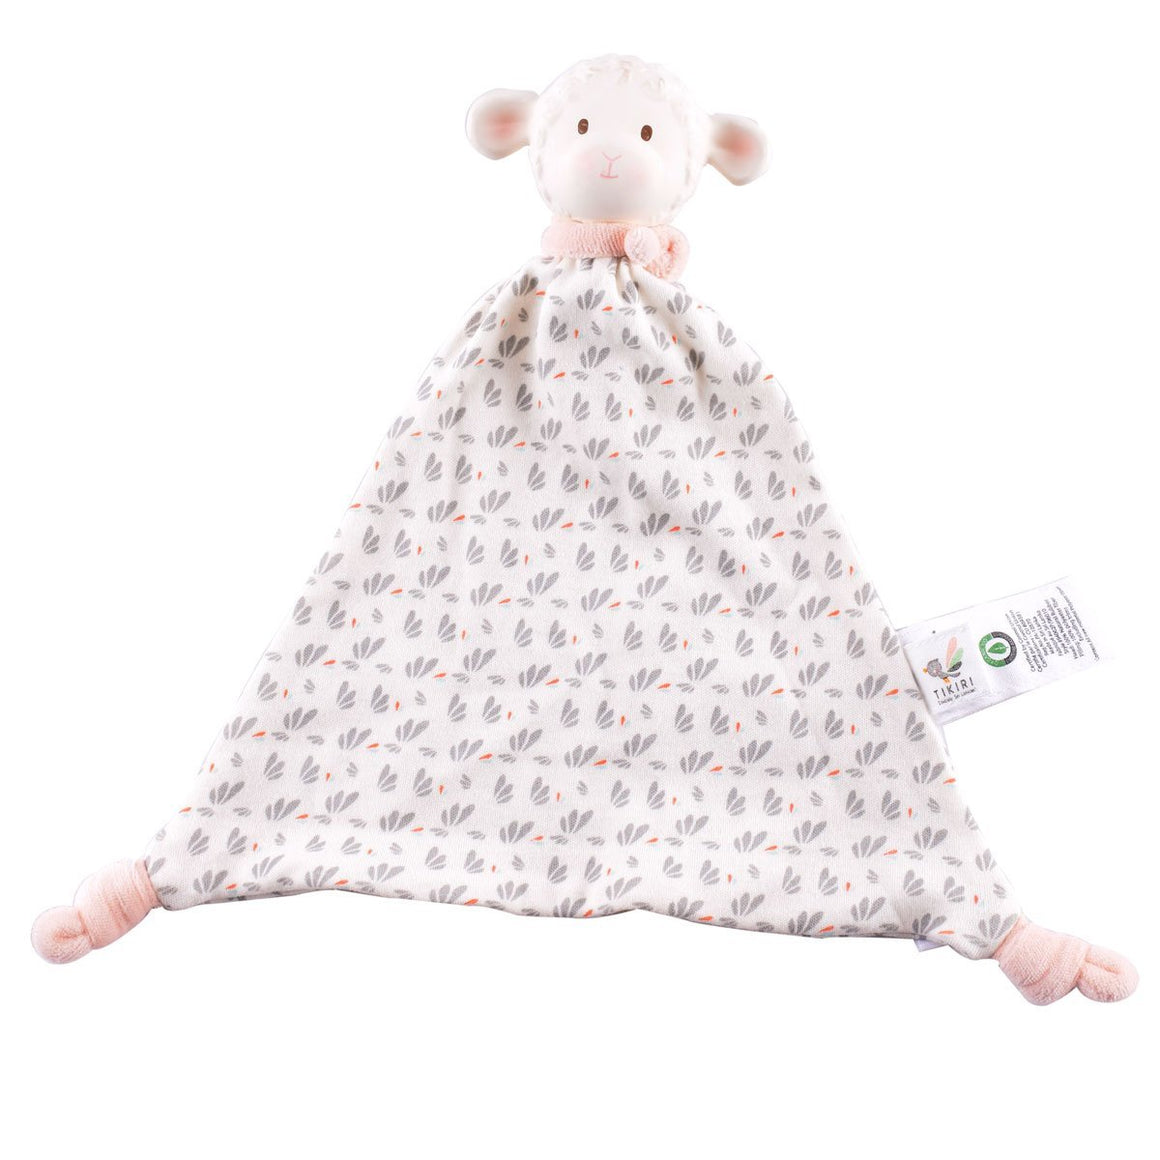 Lila Lamb Comforter with Rubber Head - Razberry Kids Co